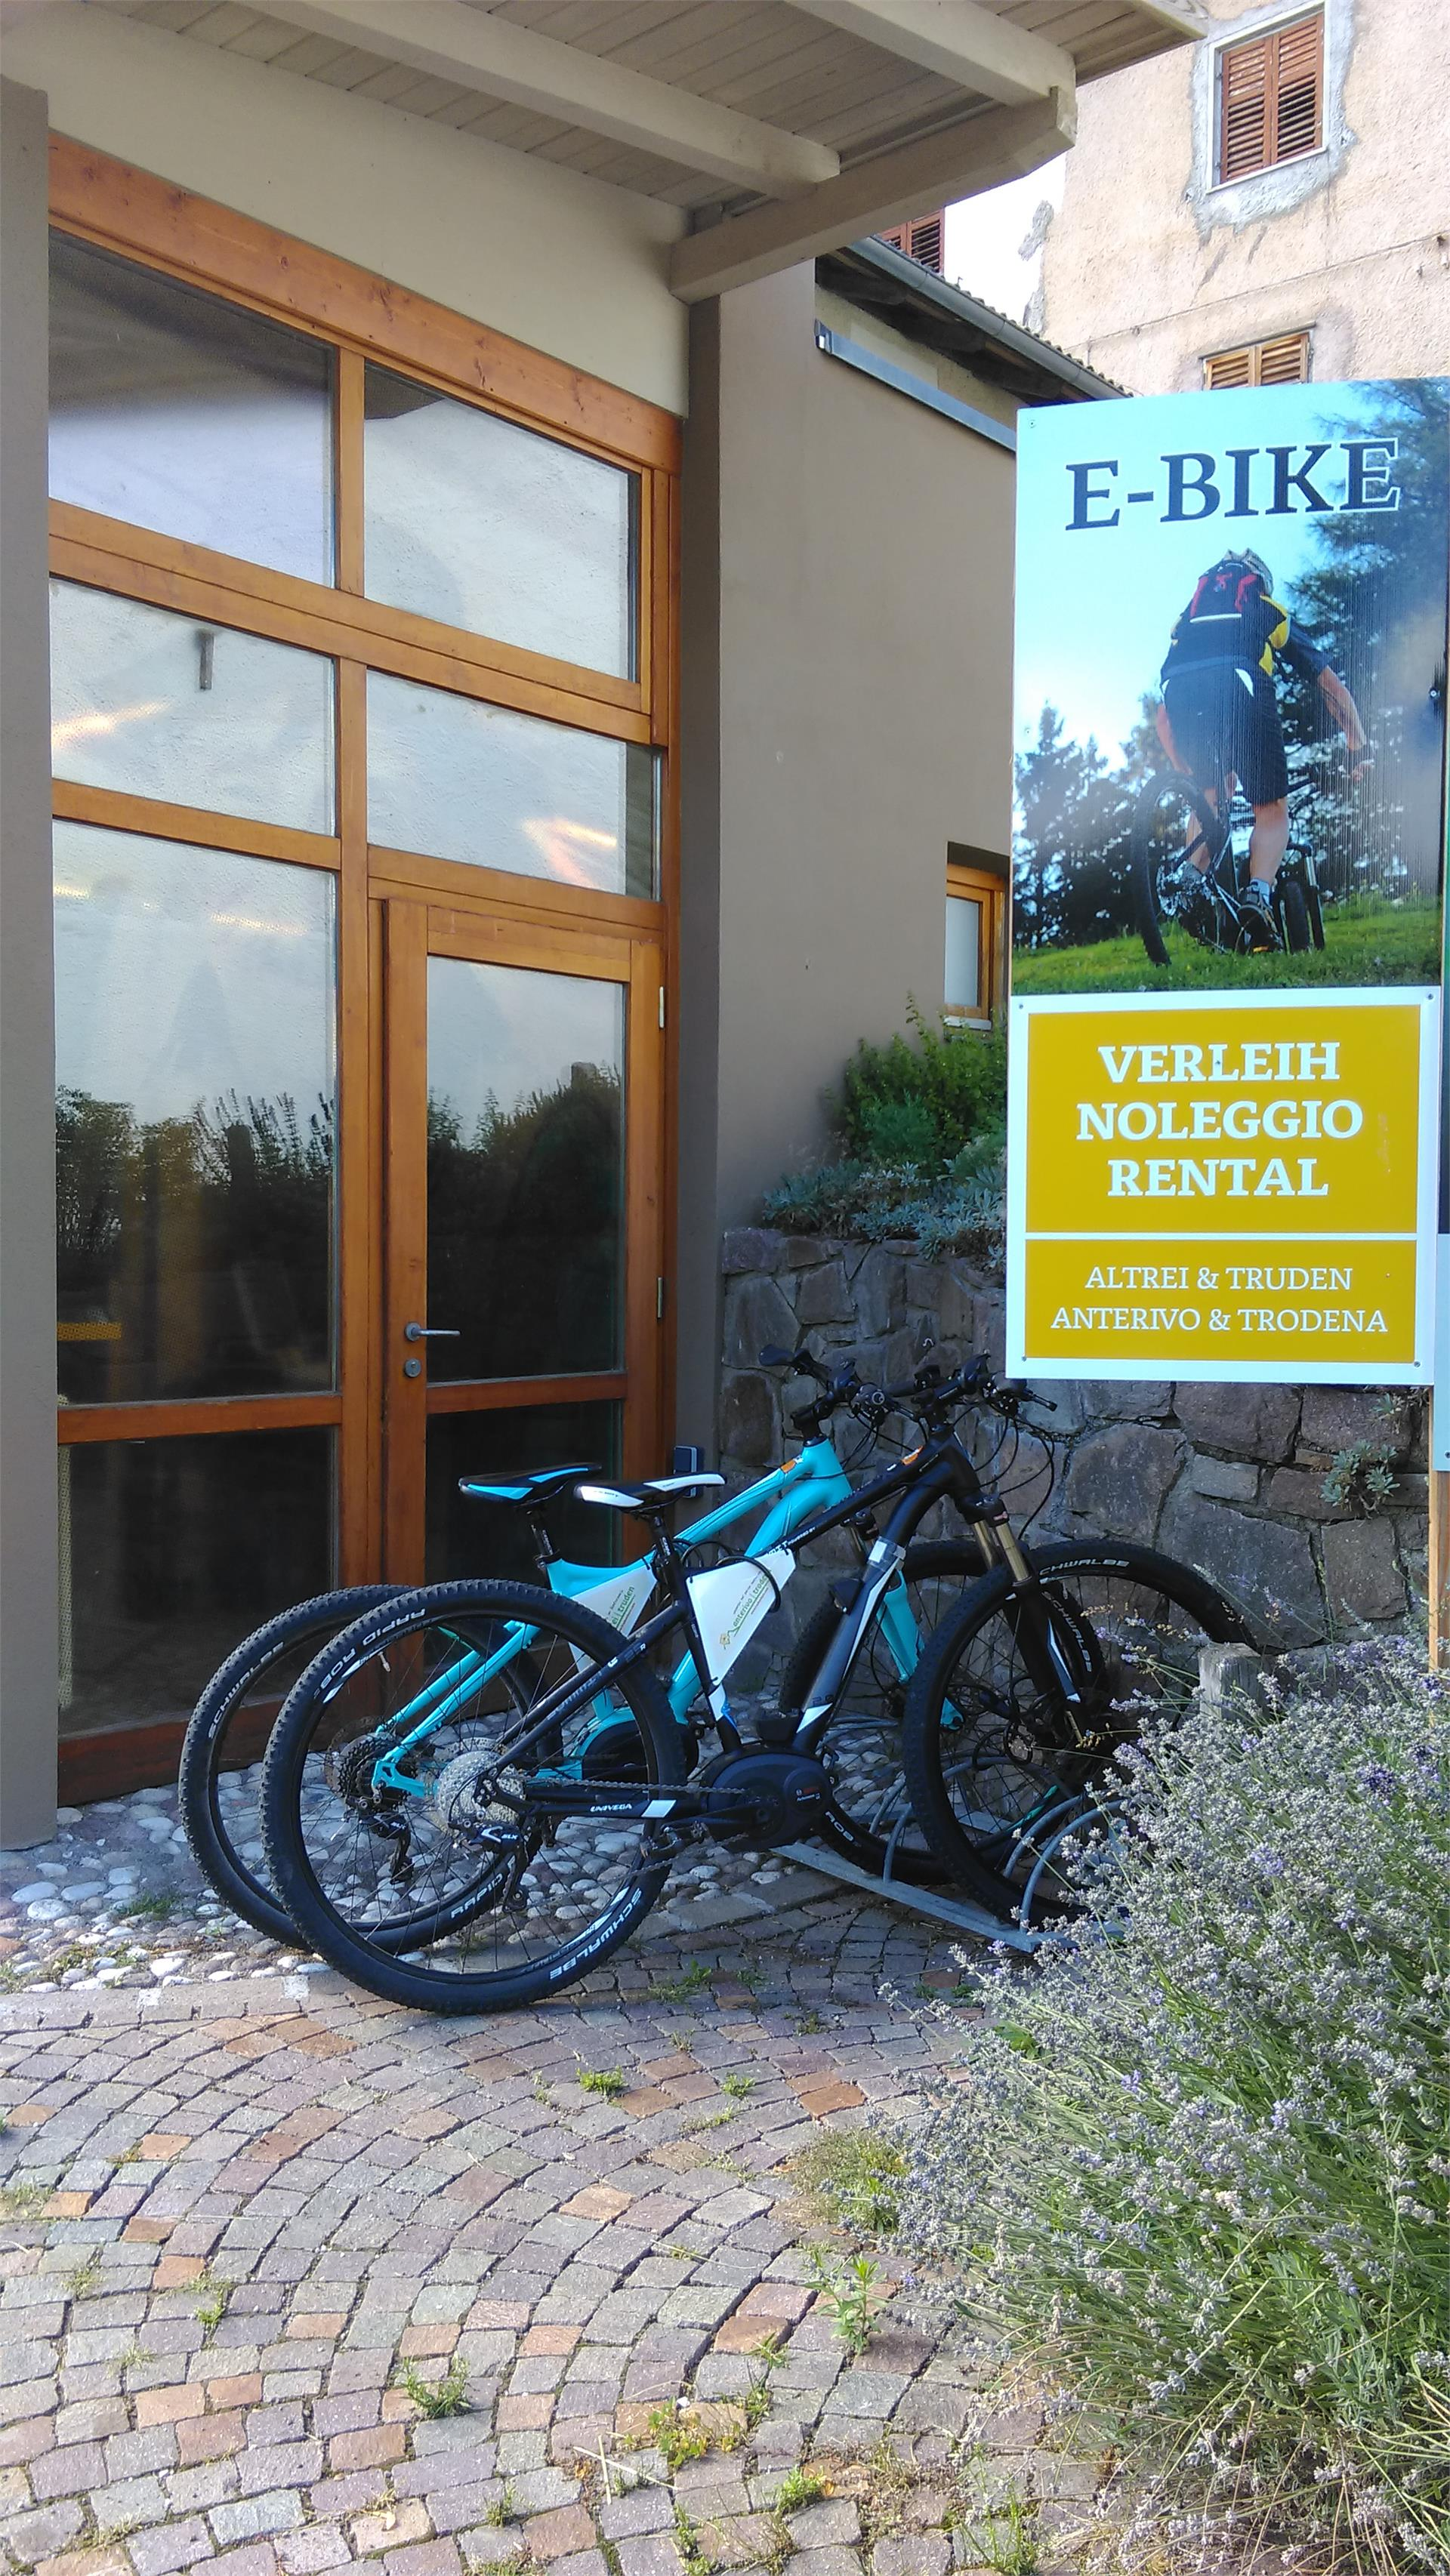 E-Bike rental at Trodena and Anterivo